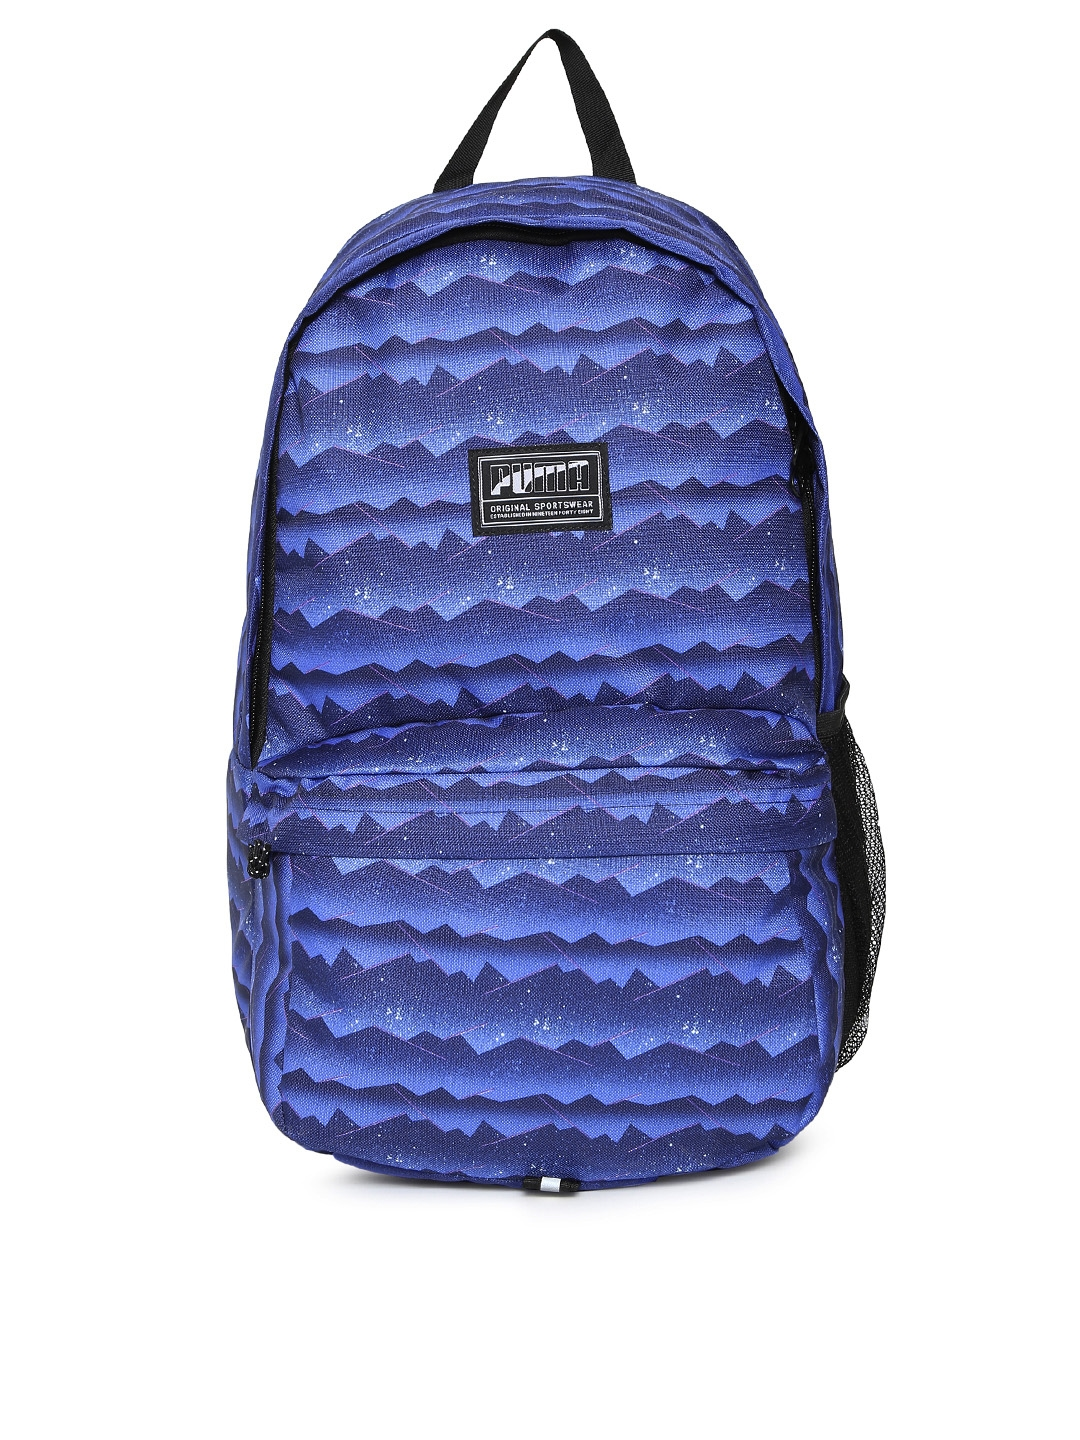 33d6a7e2f6294 Buy Puma Unisex Blue Printed Academy Backpack - Backpacks for Unisex ...